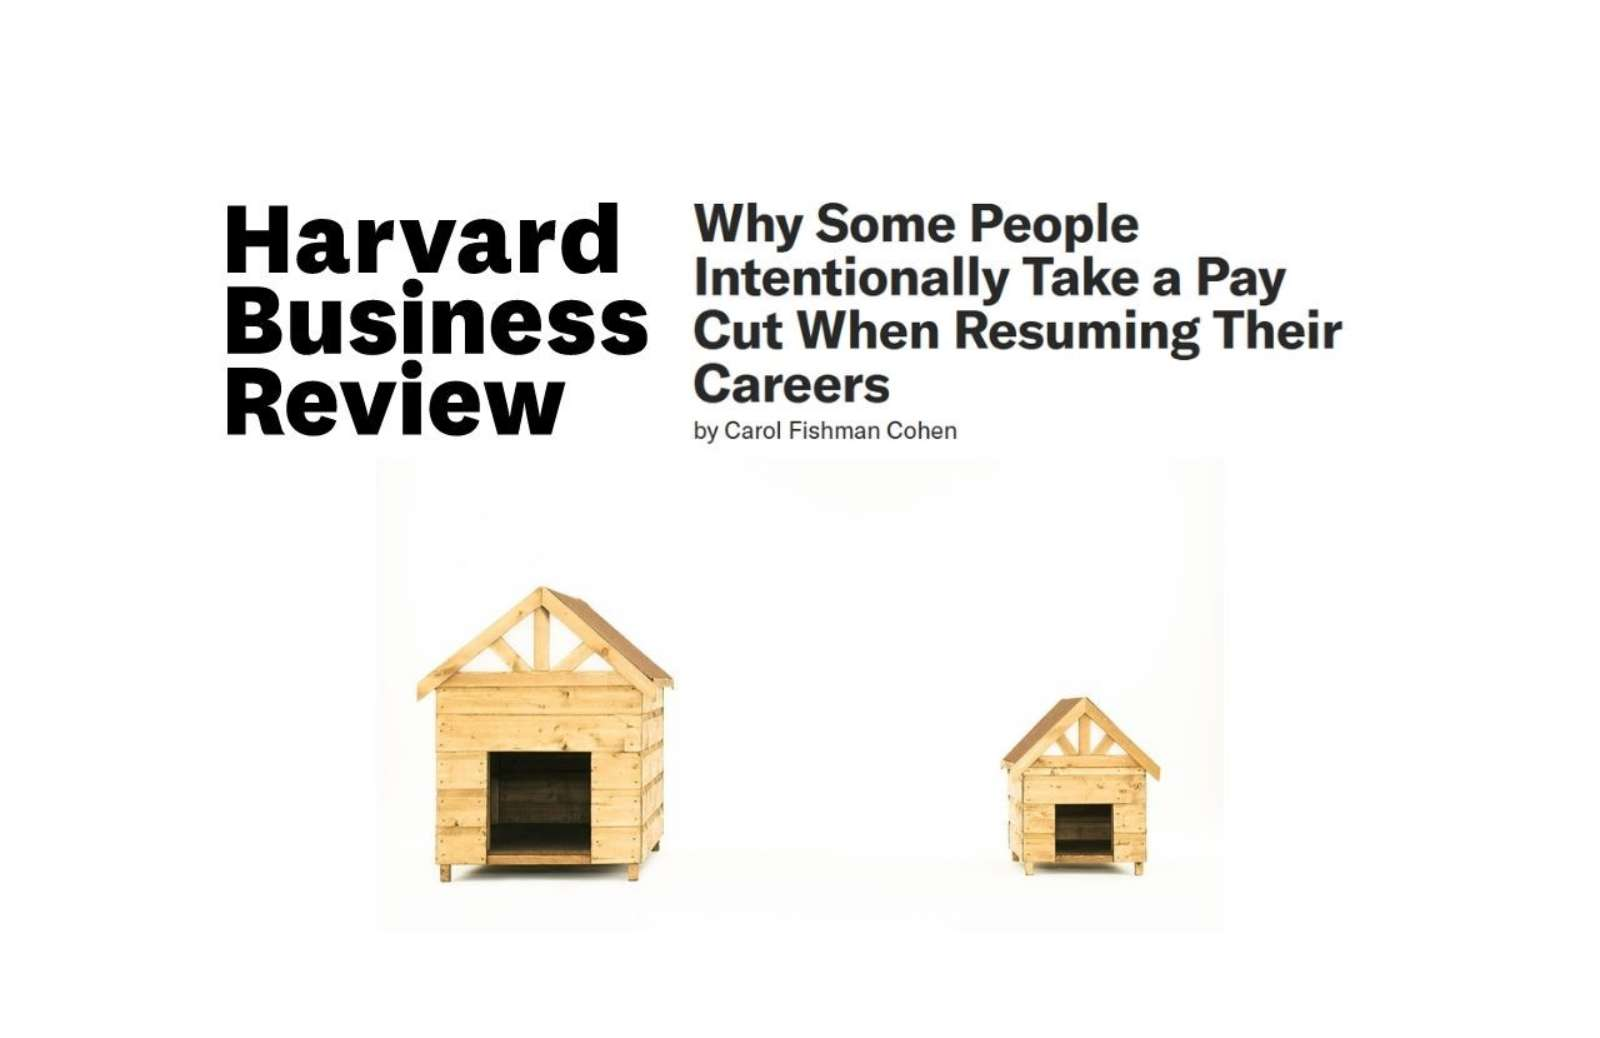 Hbr why some people intentionally take lower level position news thumbnail